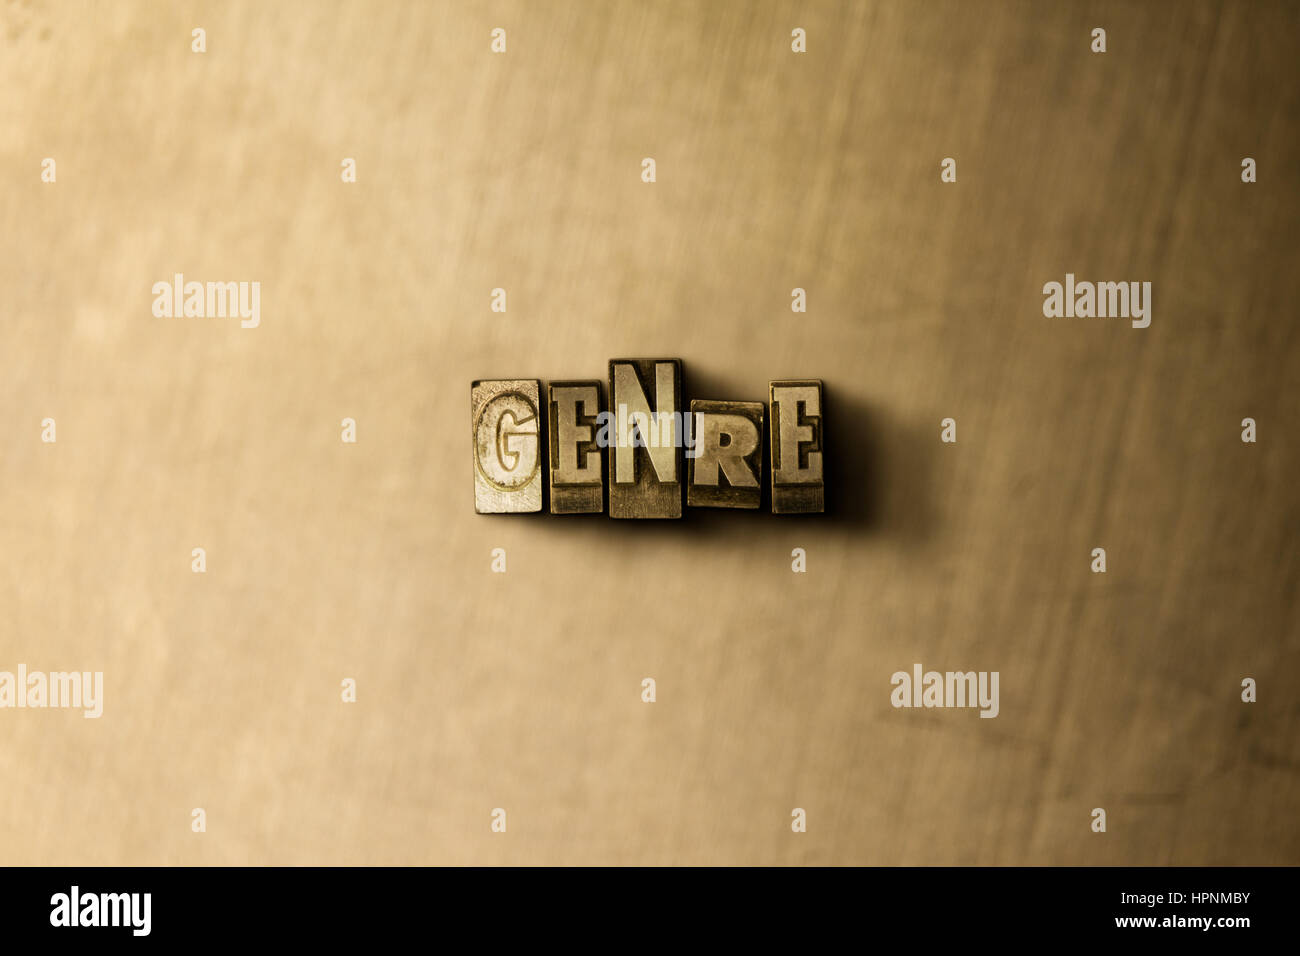 GENRE - close-up of grungy vintage typeset word on metal backdrop. Royalty free stock illustration.  Can be used - Stock Image